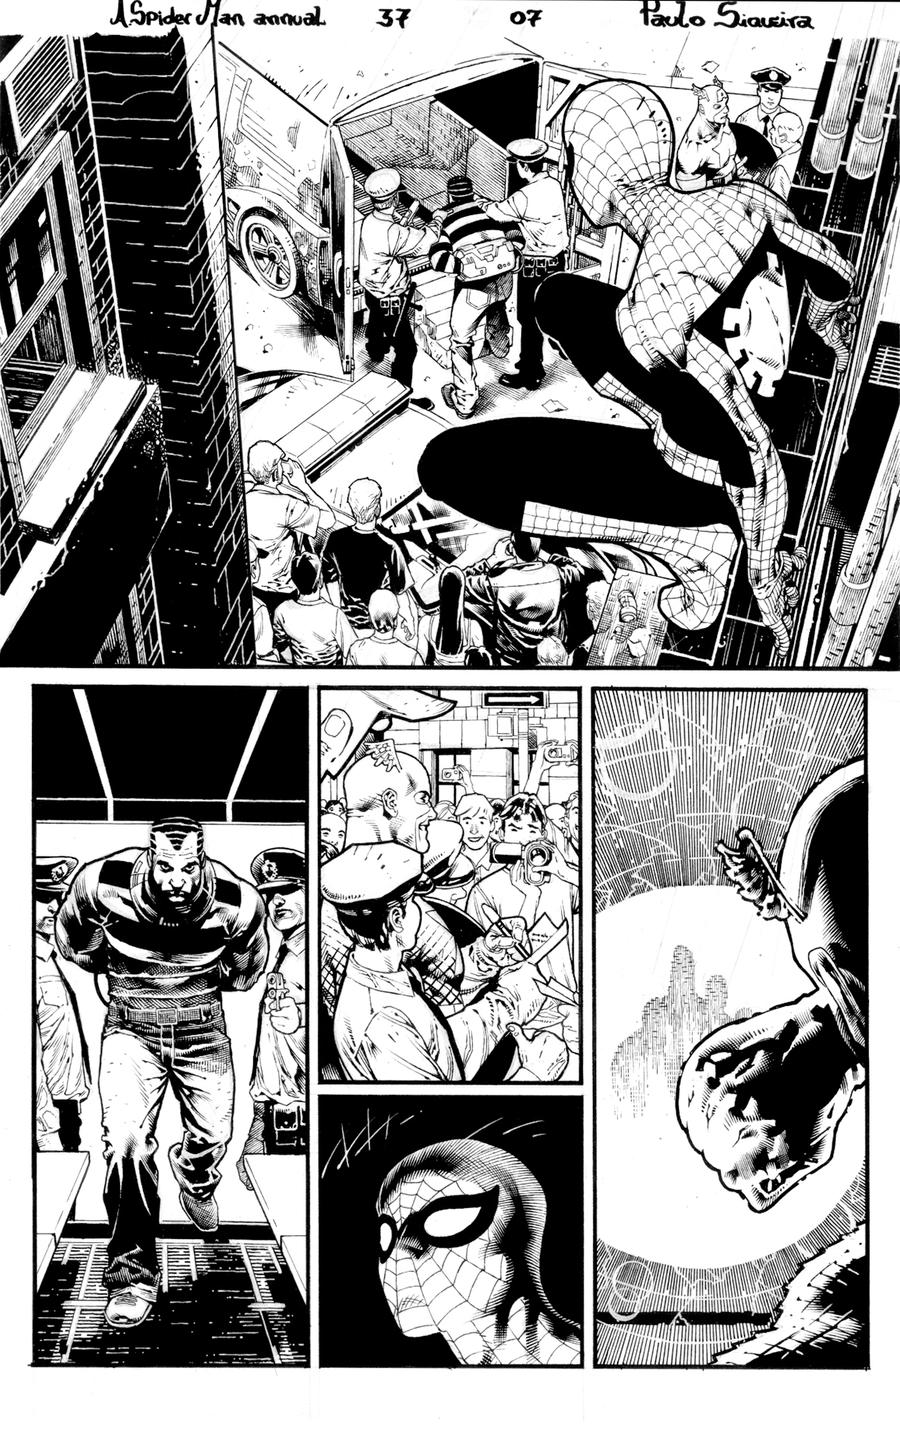 A. Spider Man annual 37 page 7